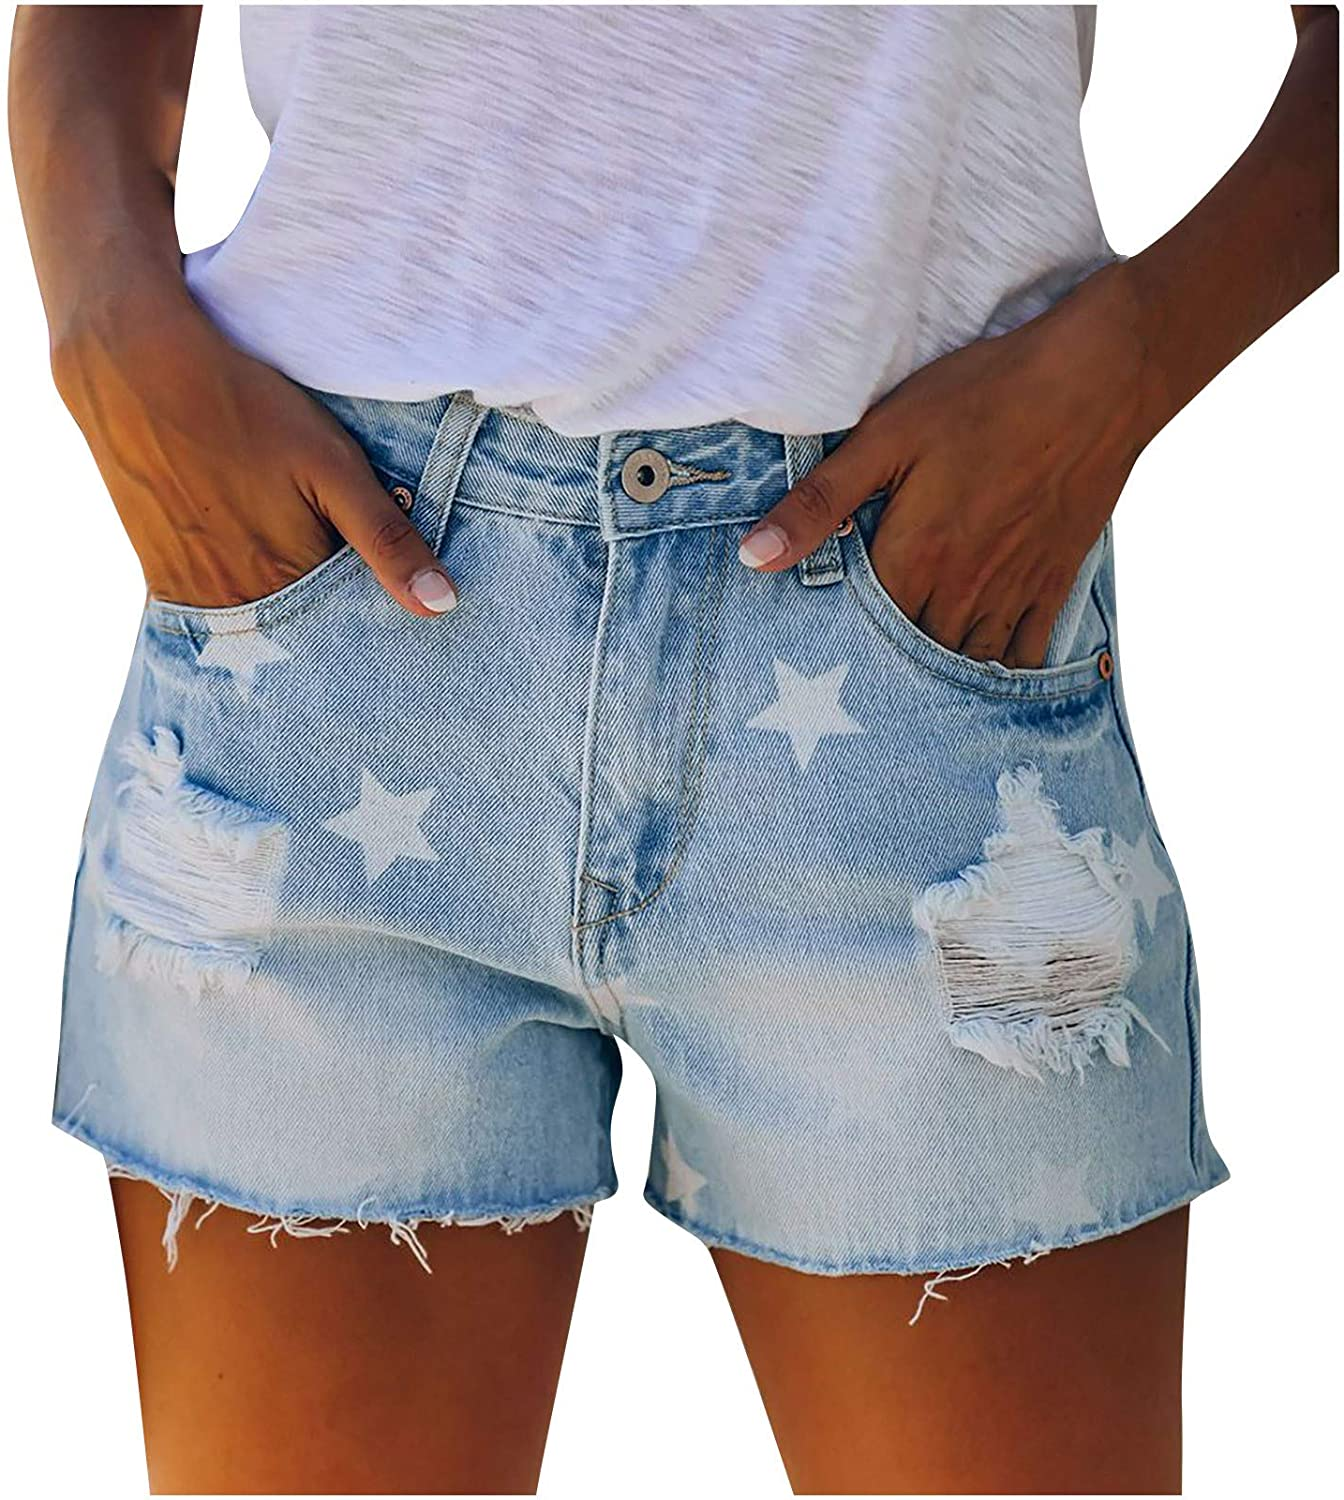 HUOJING Ripped Short Jeans for Women Solid Color Stretch Denim Shorts Buttons Pockets Summer Casual Hot Pants